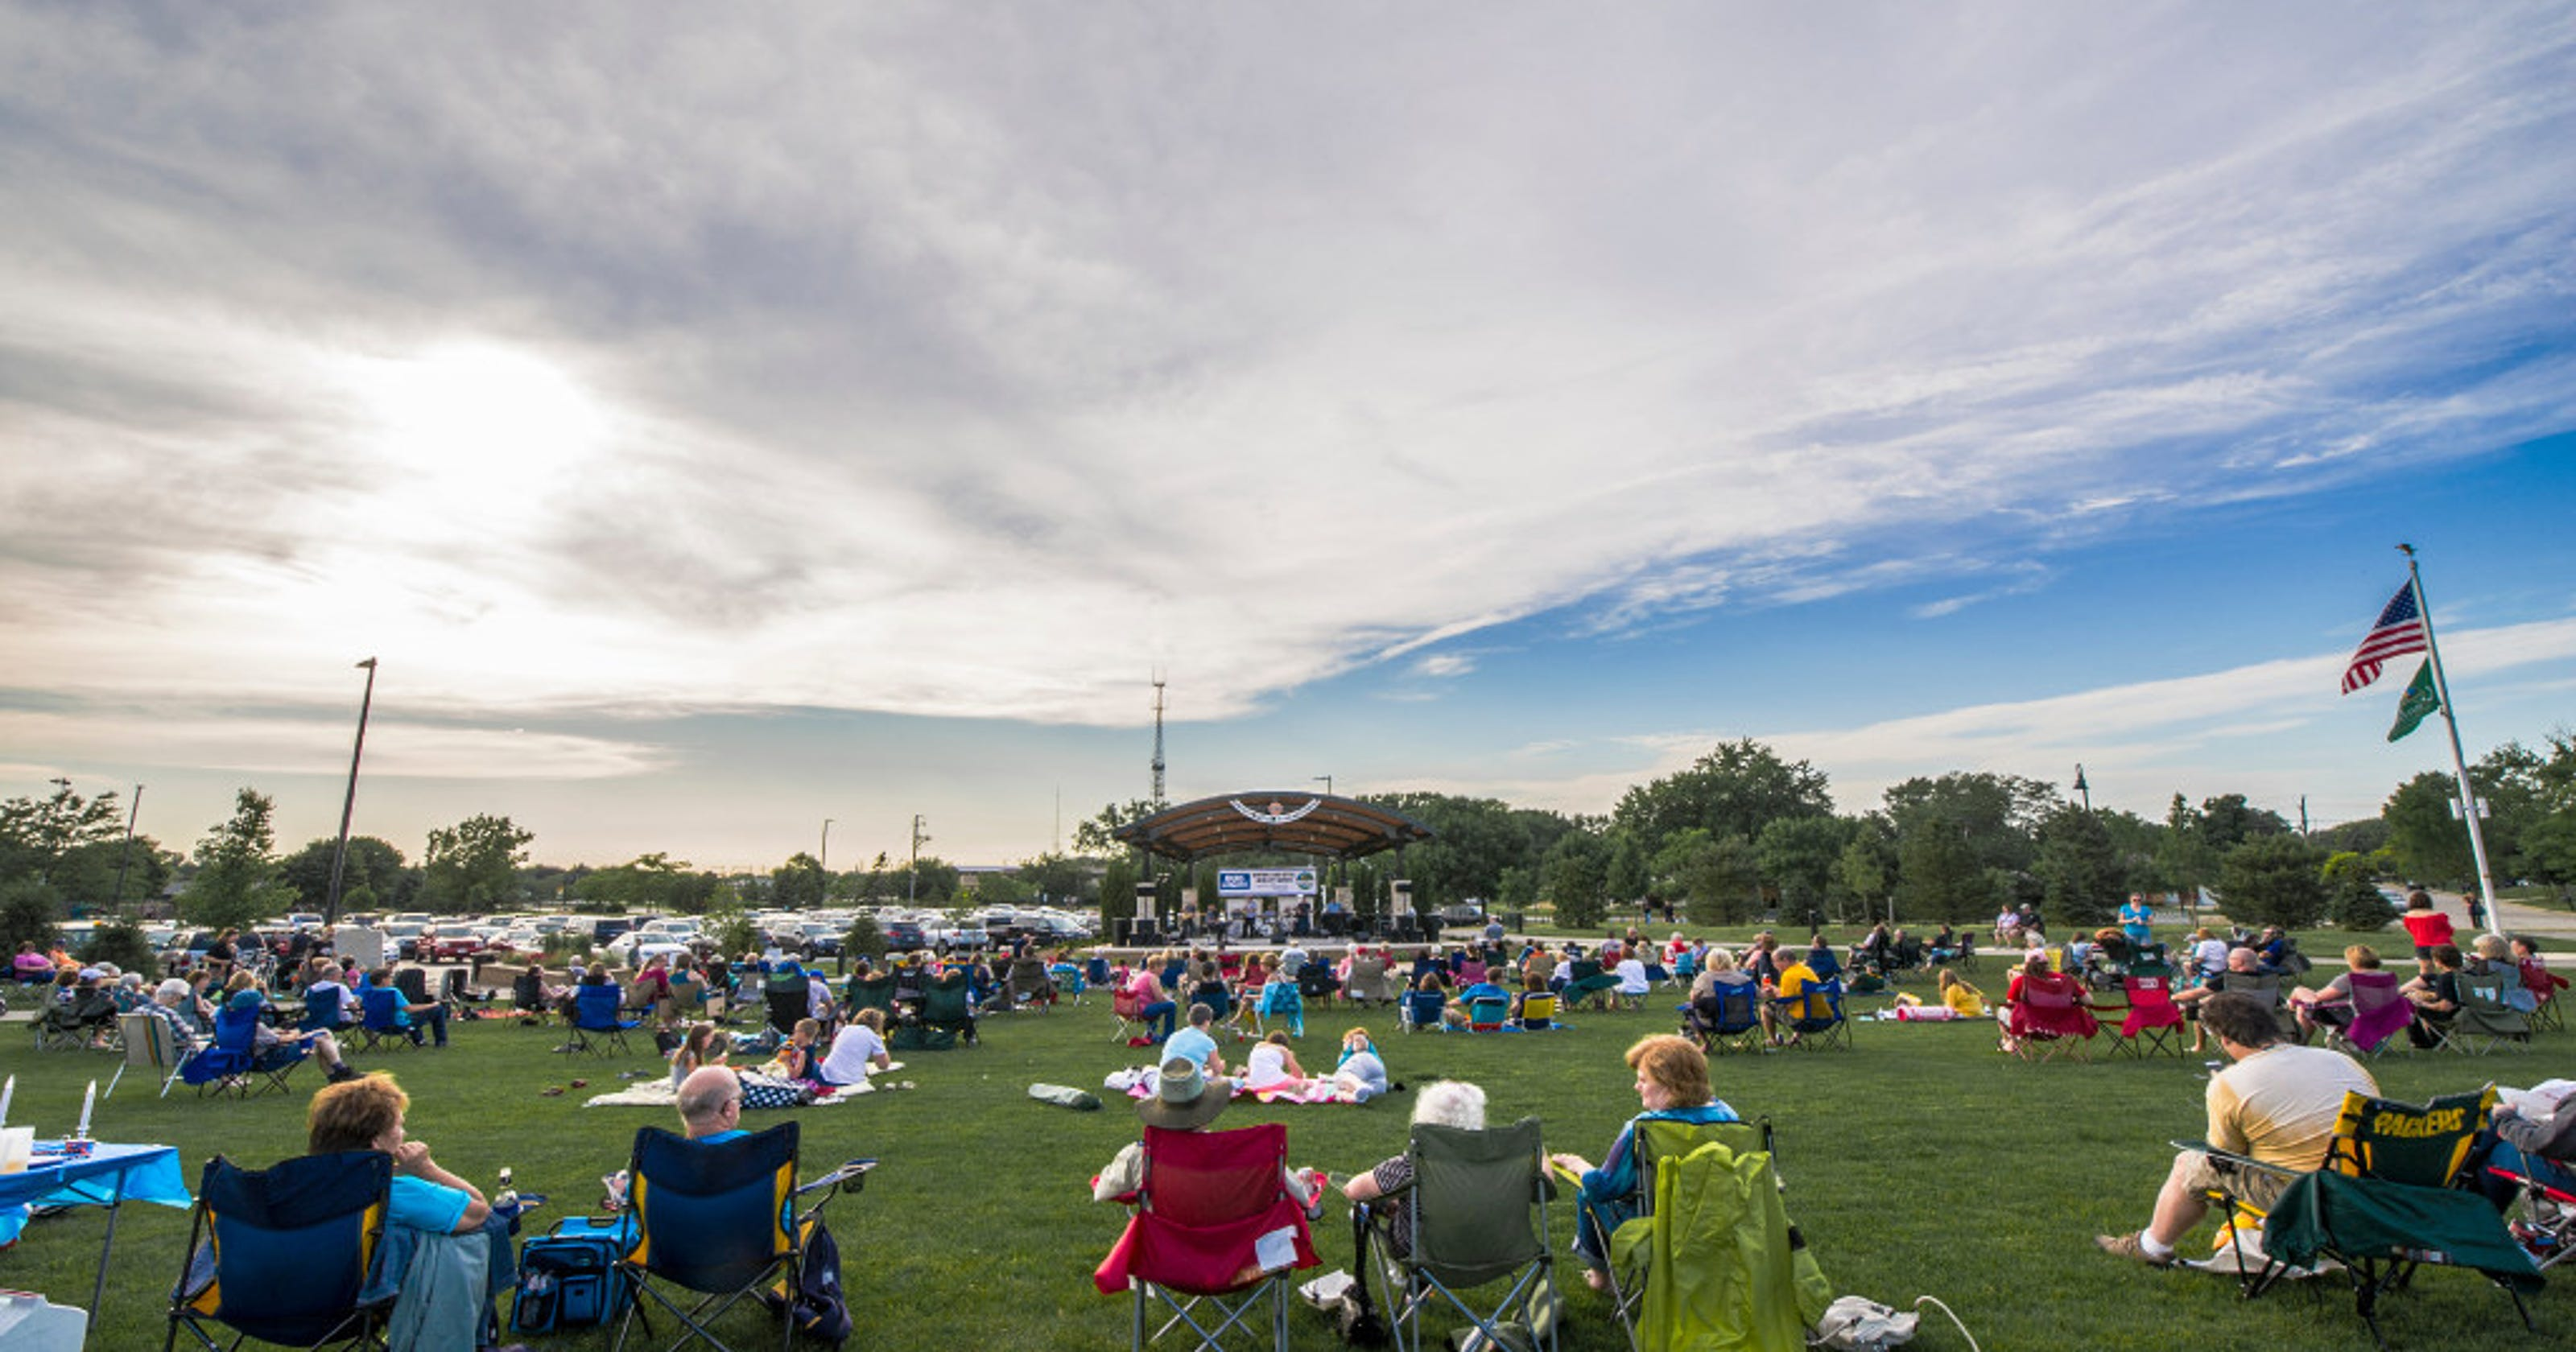 21 things to do in Greenfield, West Allis, Greendale and Hales Corners